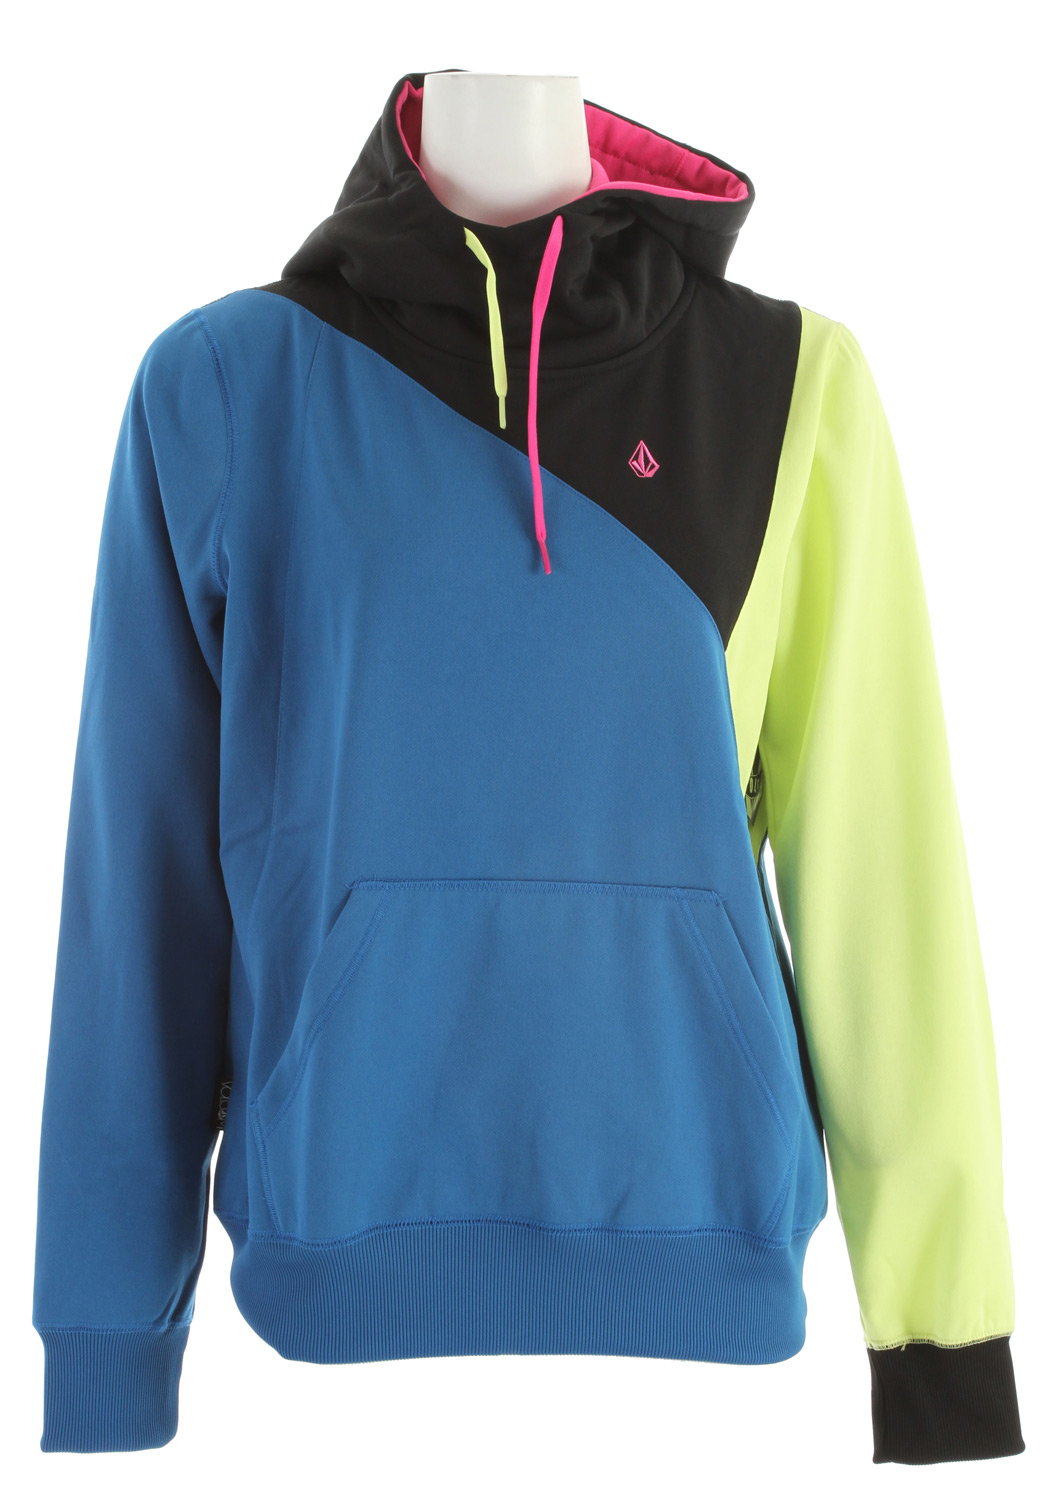 Surf Key Features of the Volcom Avena Full Zip Hoodie: Hydrophobic Fleece Ribbed Cuff Ribbed Hem 2-One Drawcord Hood Cinch Contrast Colored Hood Lining Stone Embroidery Volcom Woven Label Multi Blocked Panels - $60.00